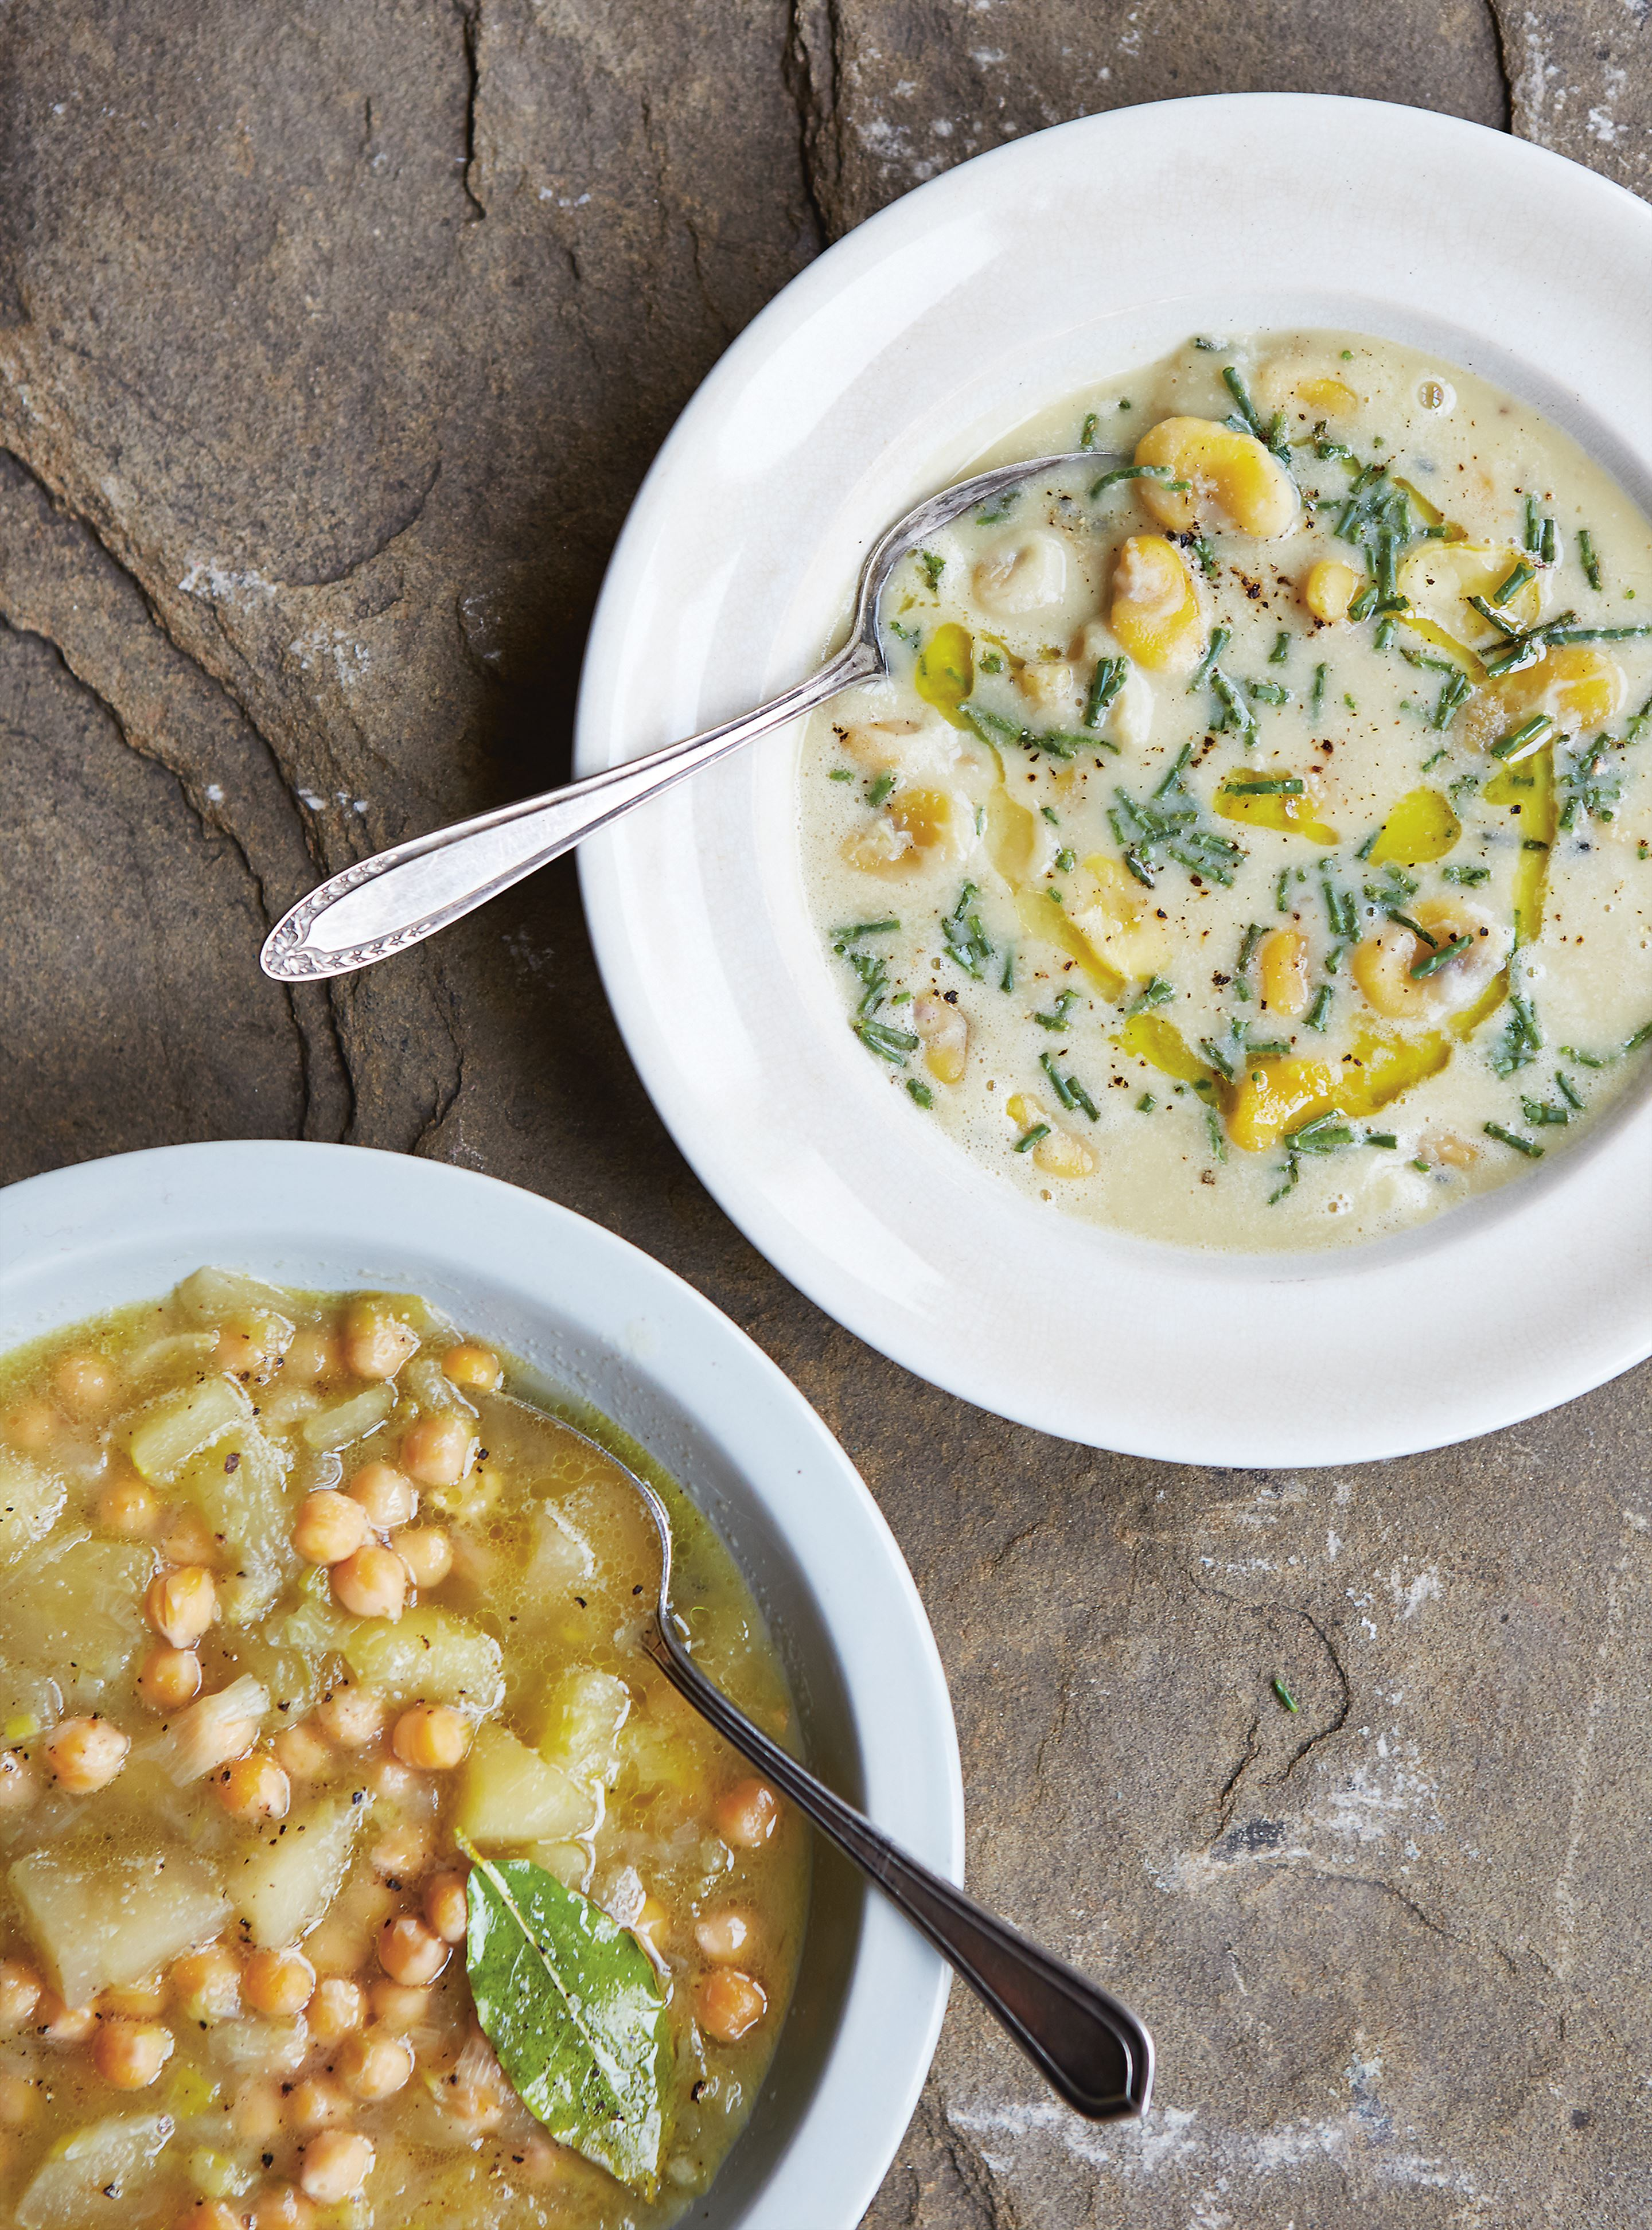 Chickpea & apple soup